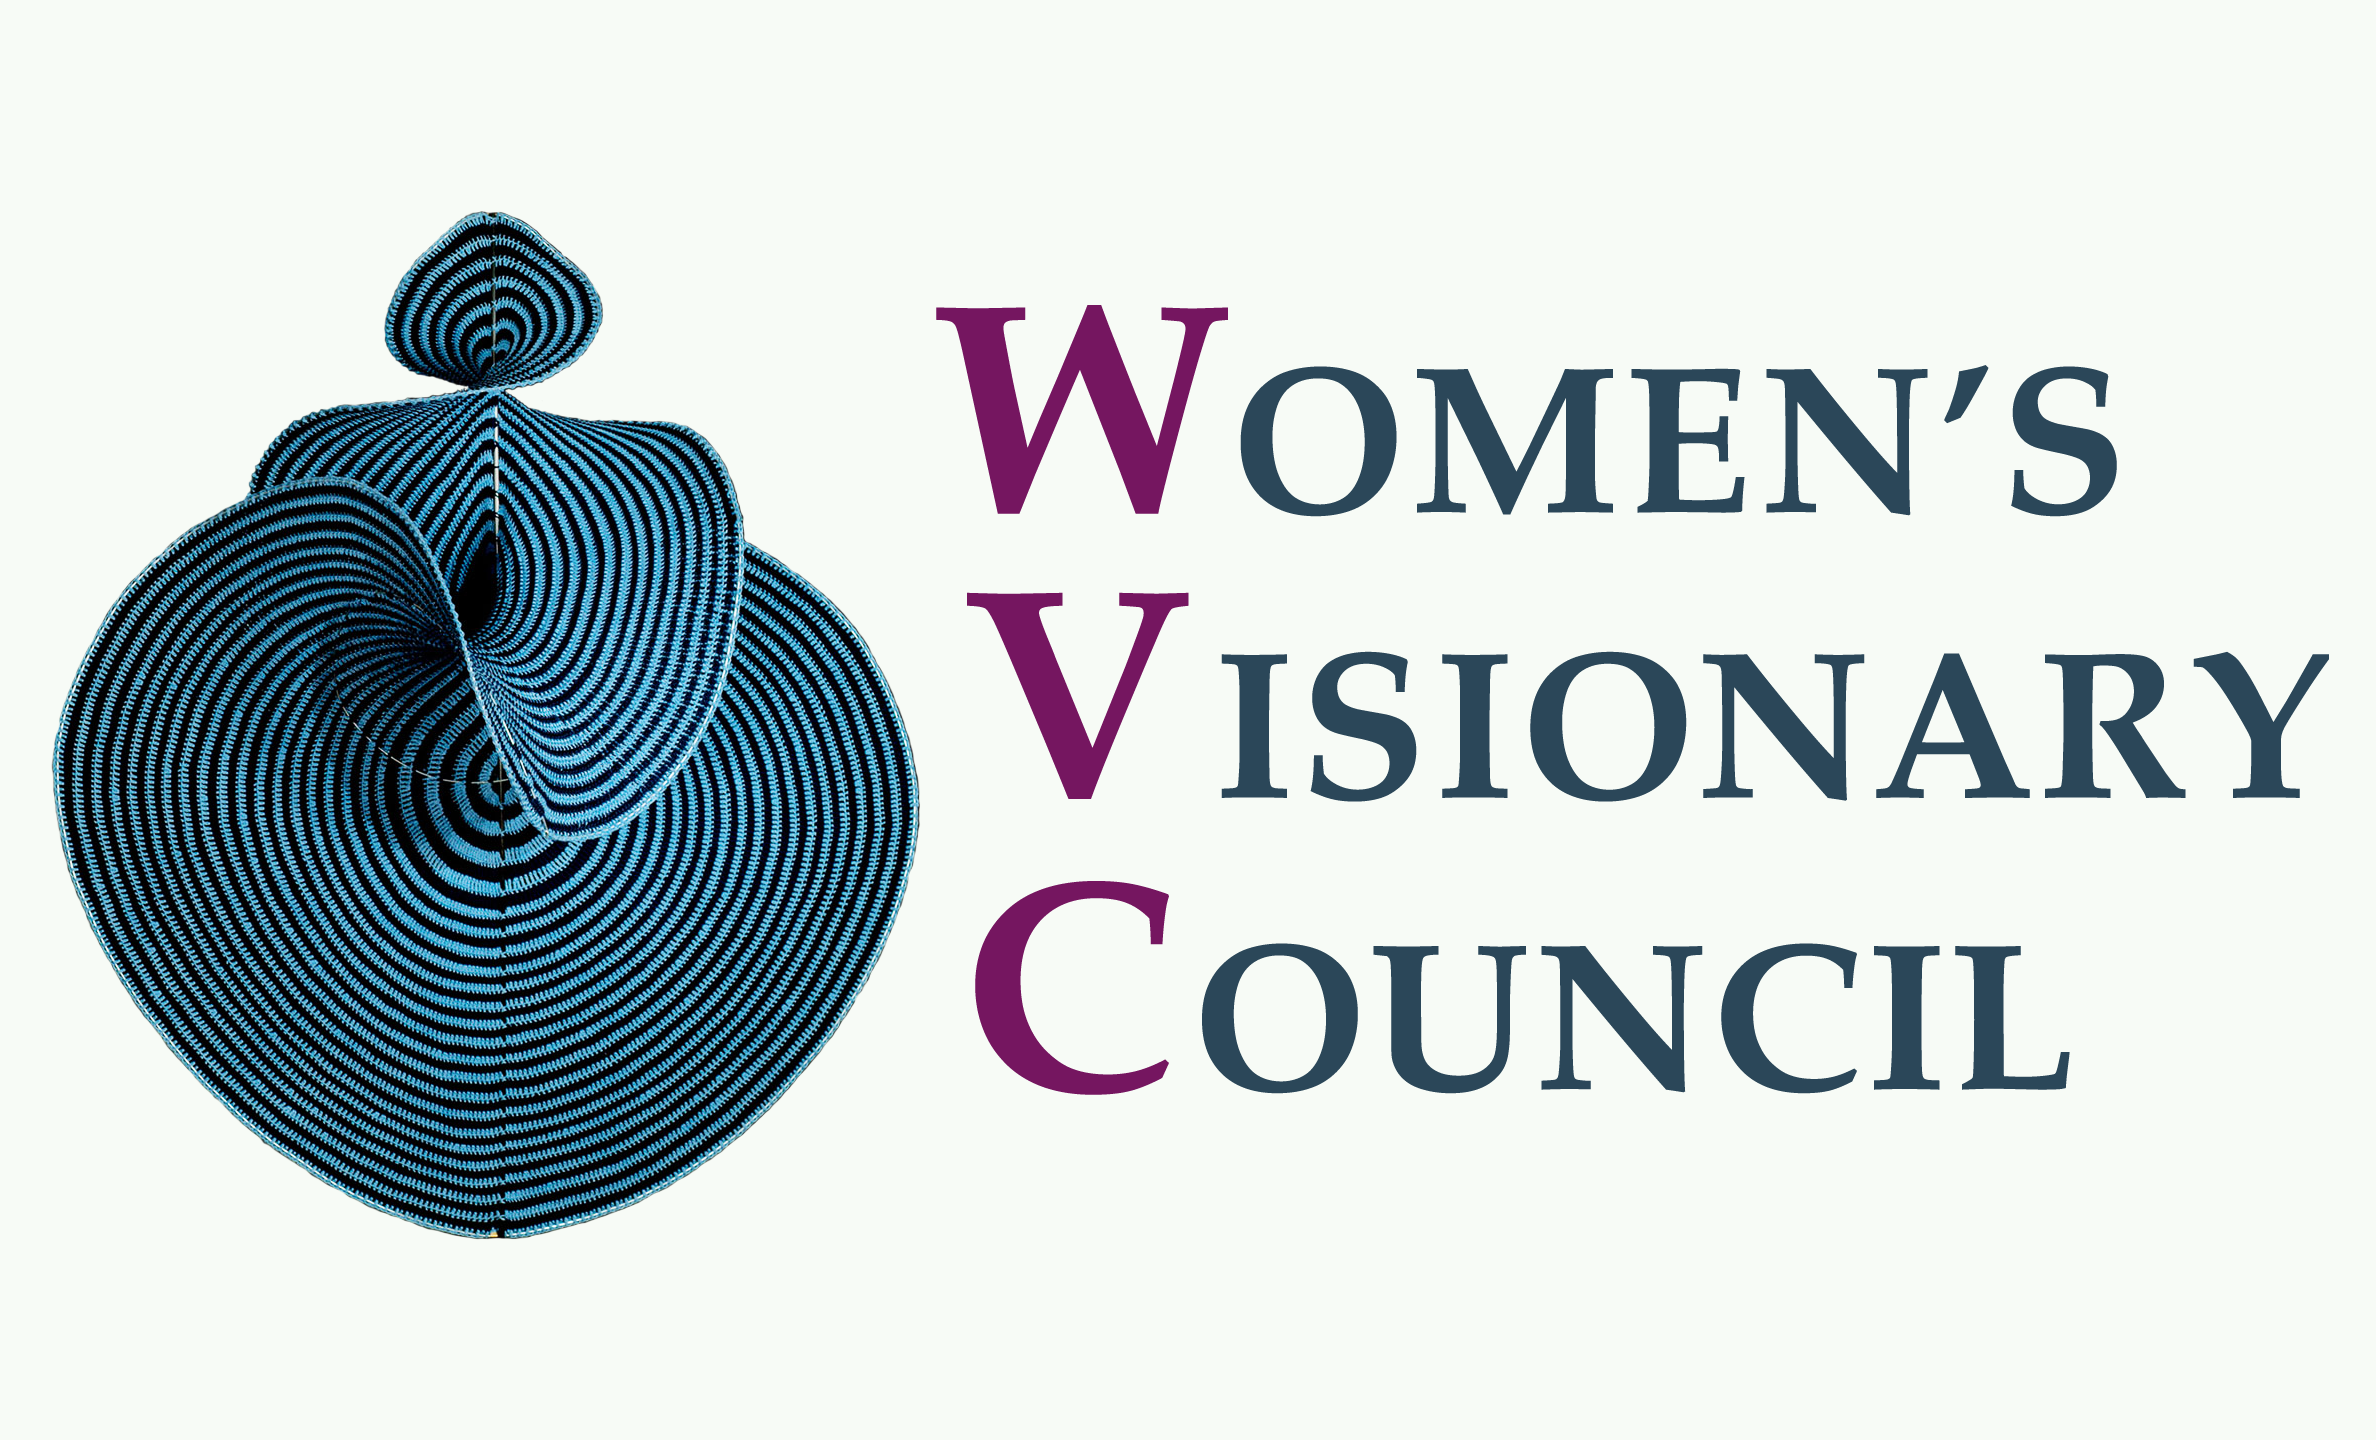 Women's Visionary Council